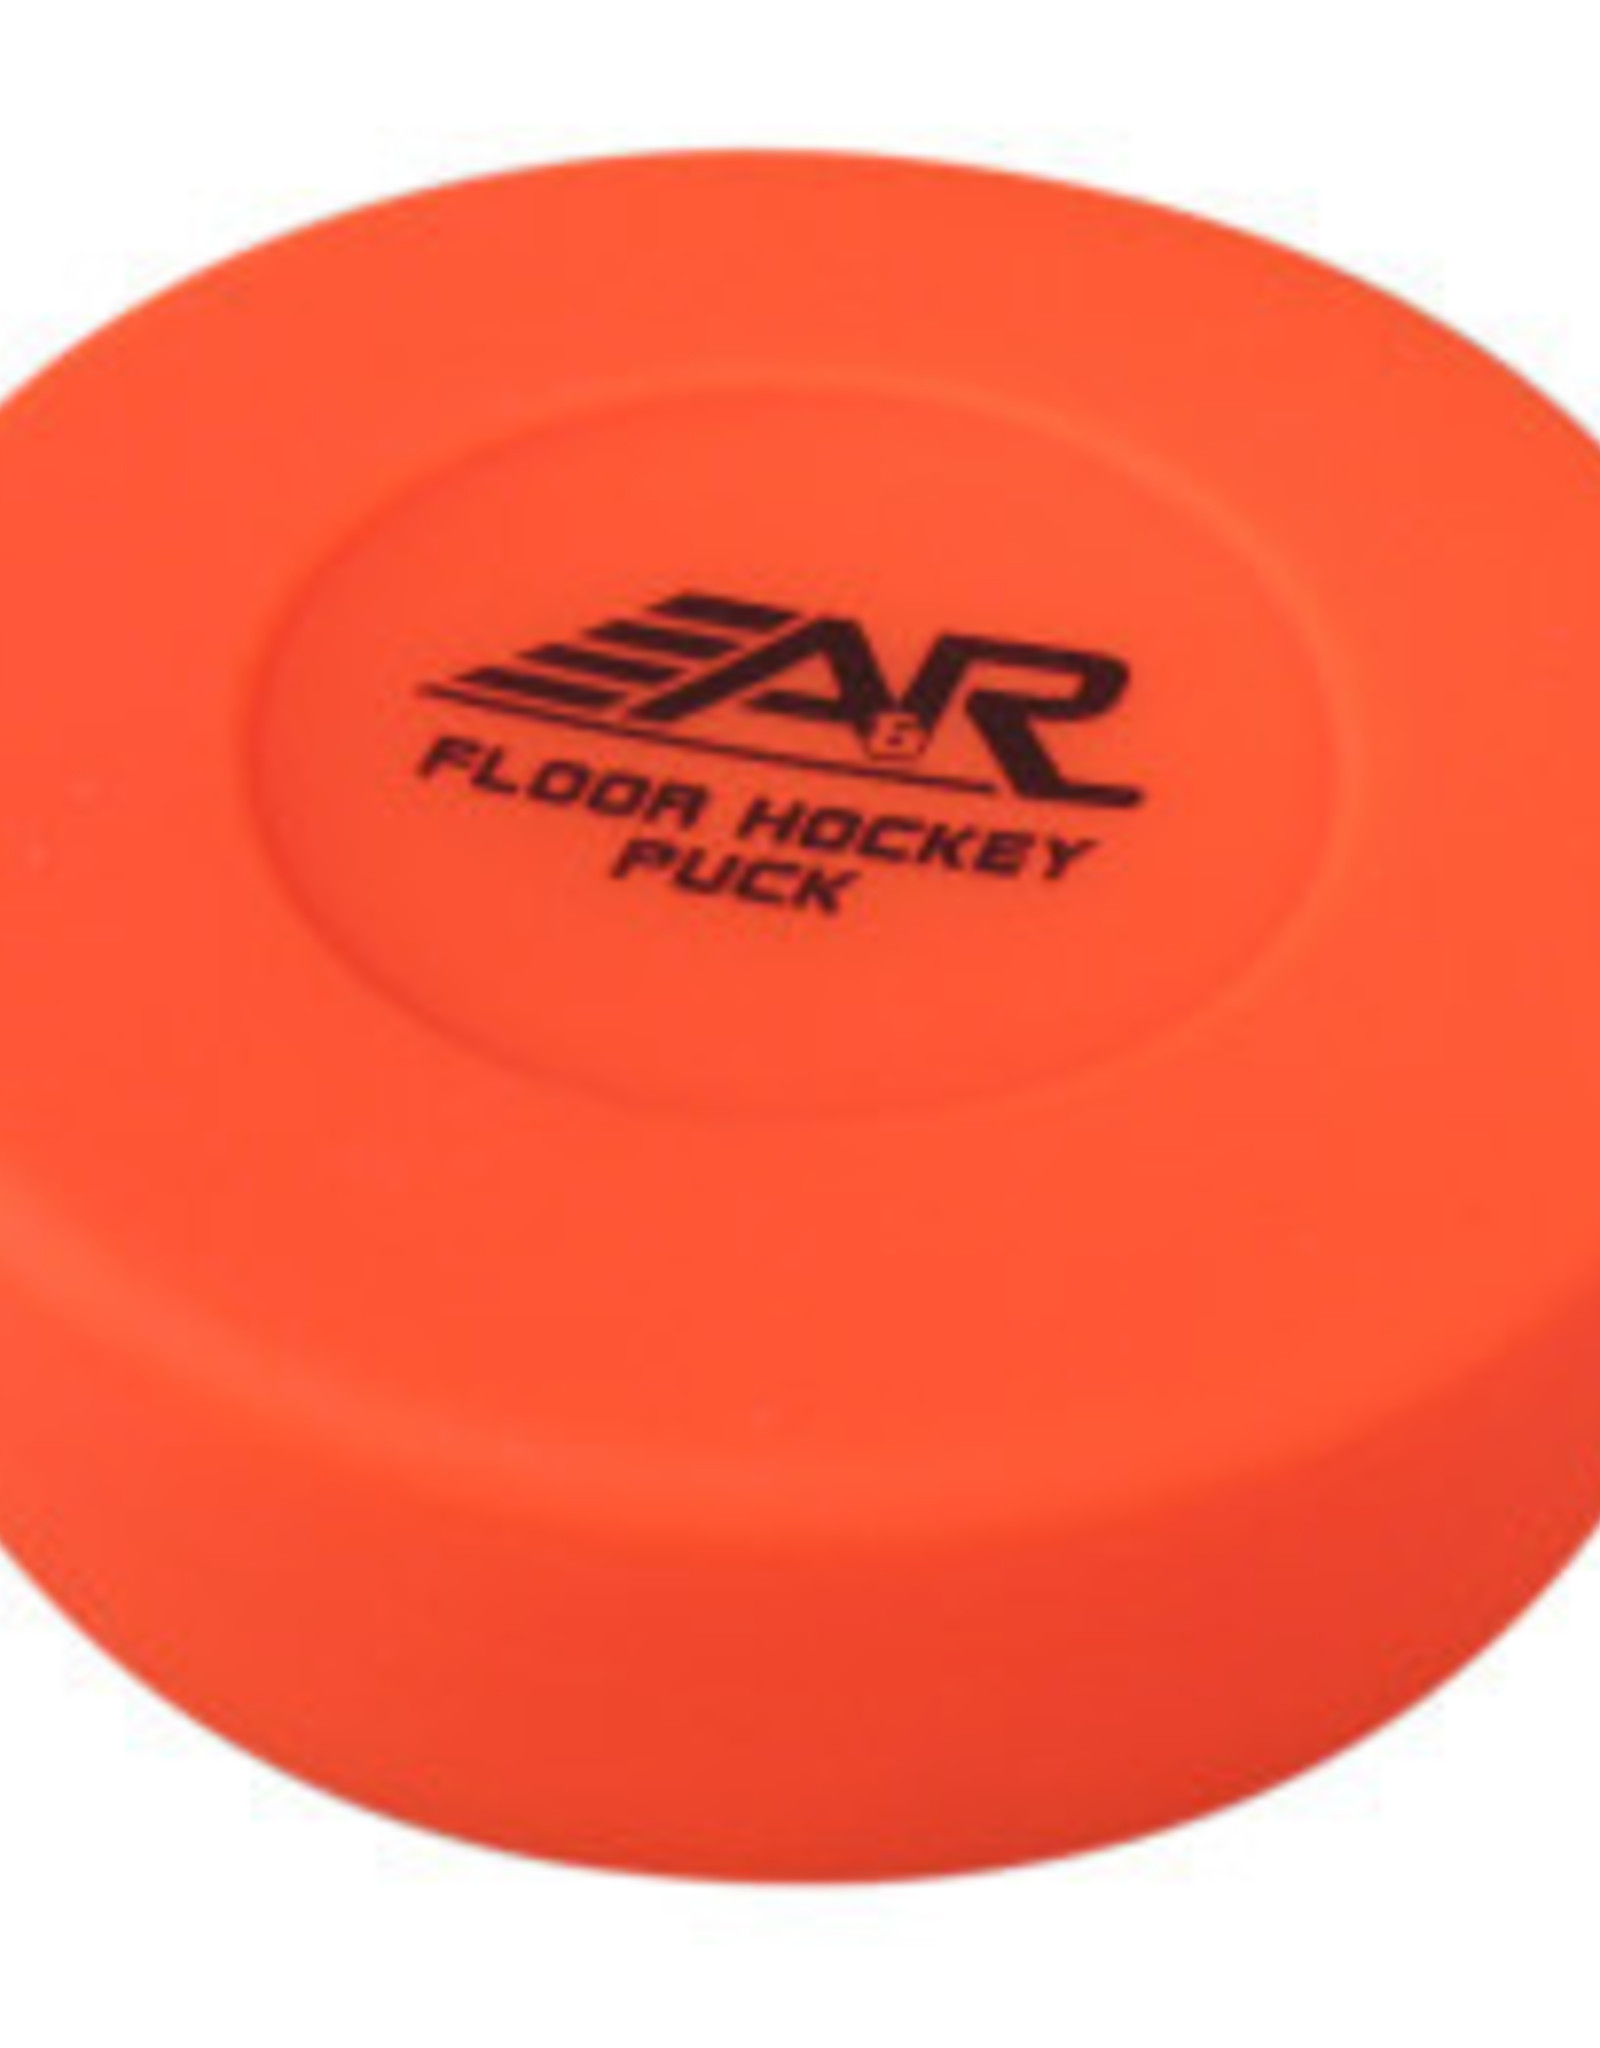 A&R A&R Street Hockey Puck (Orange)